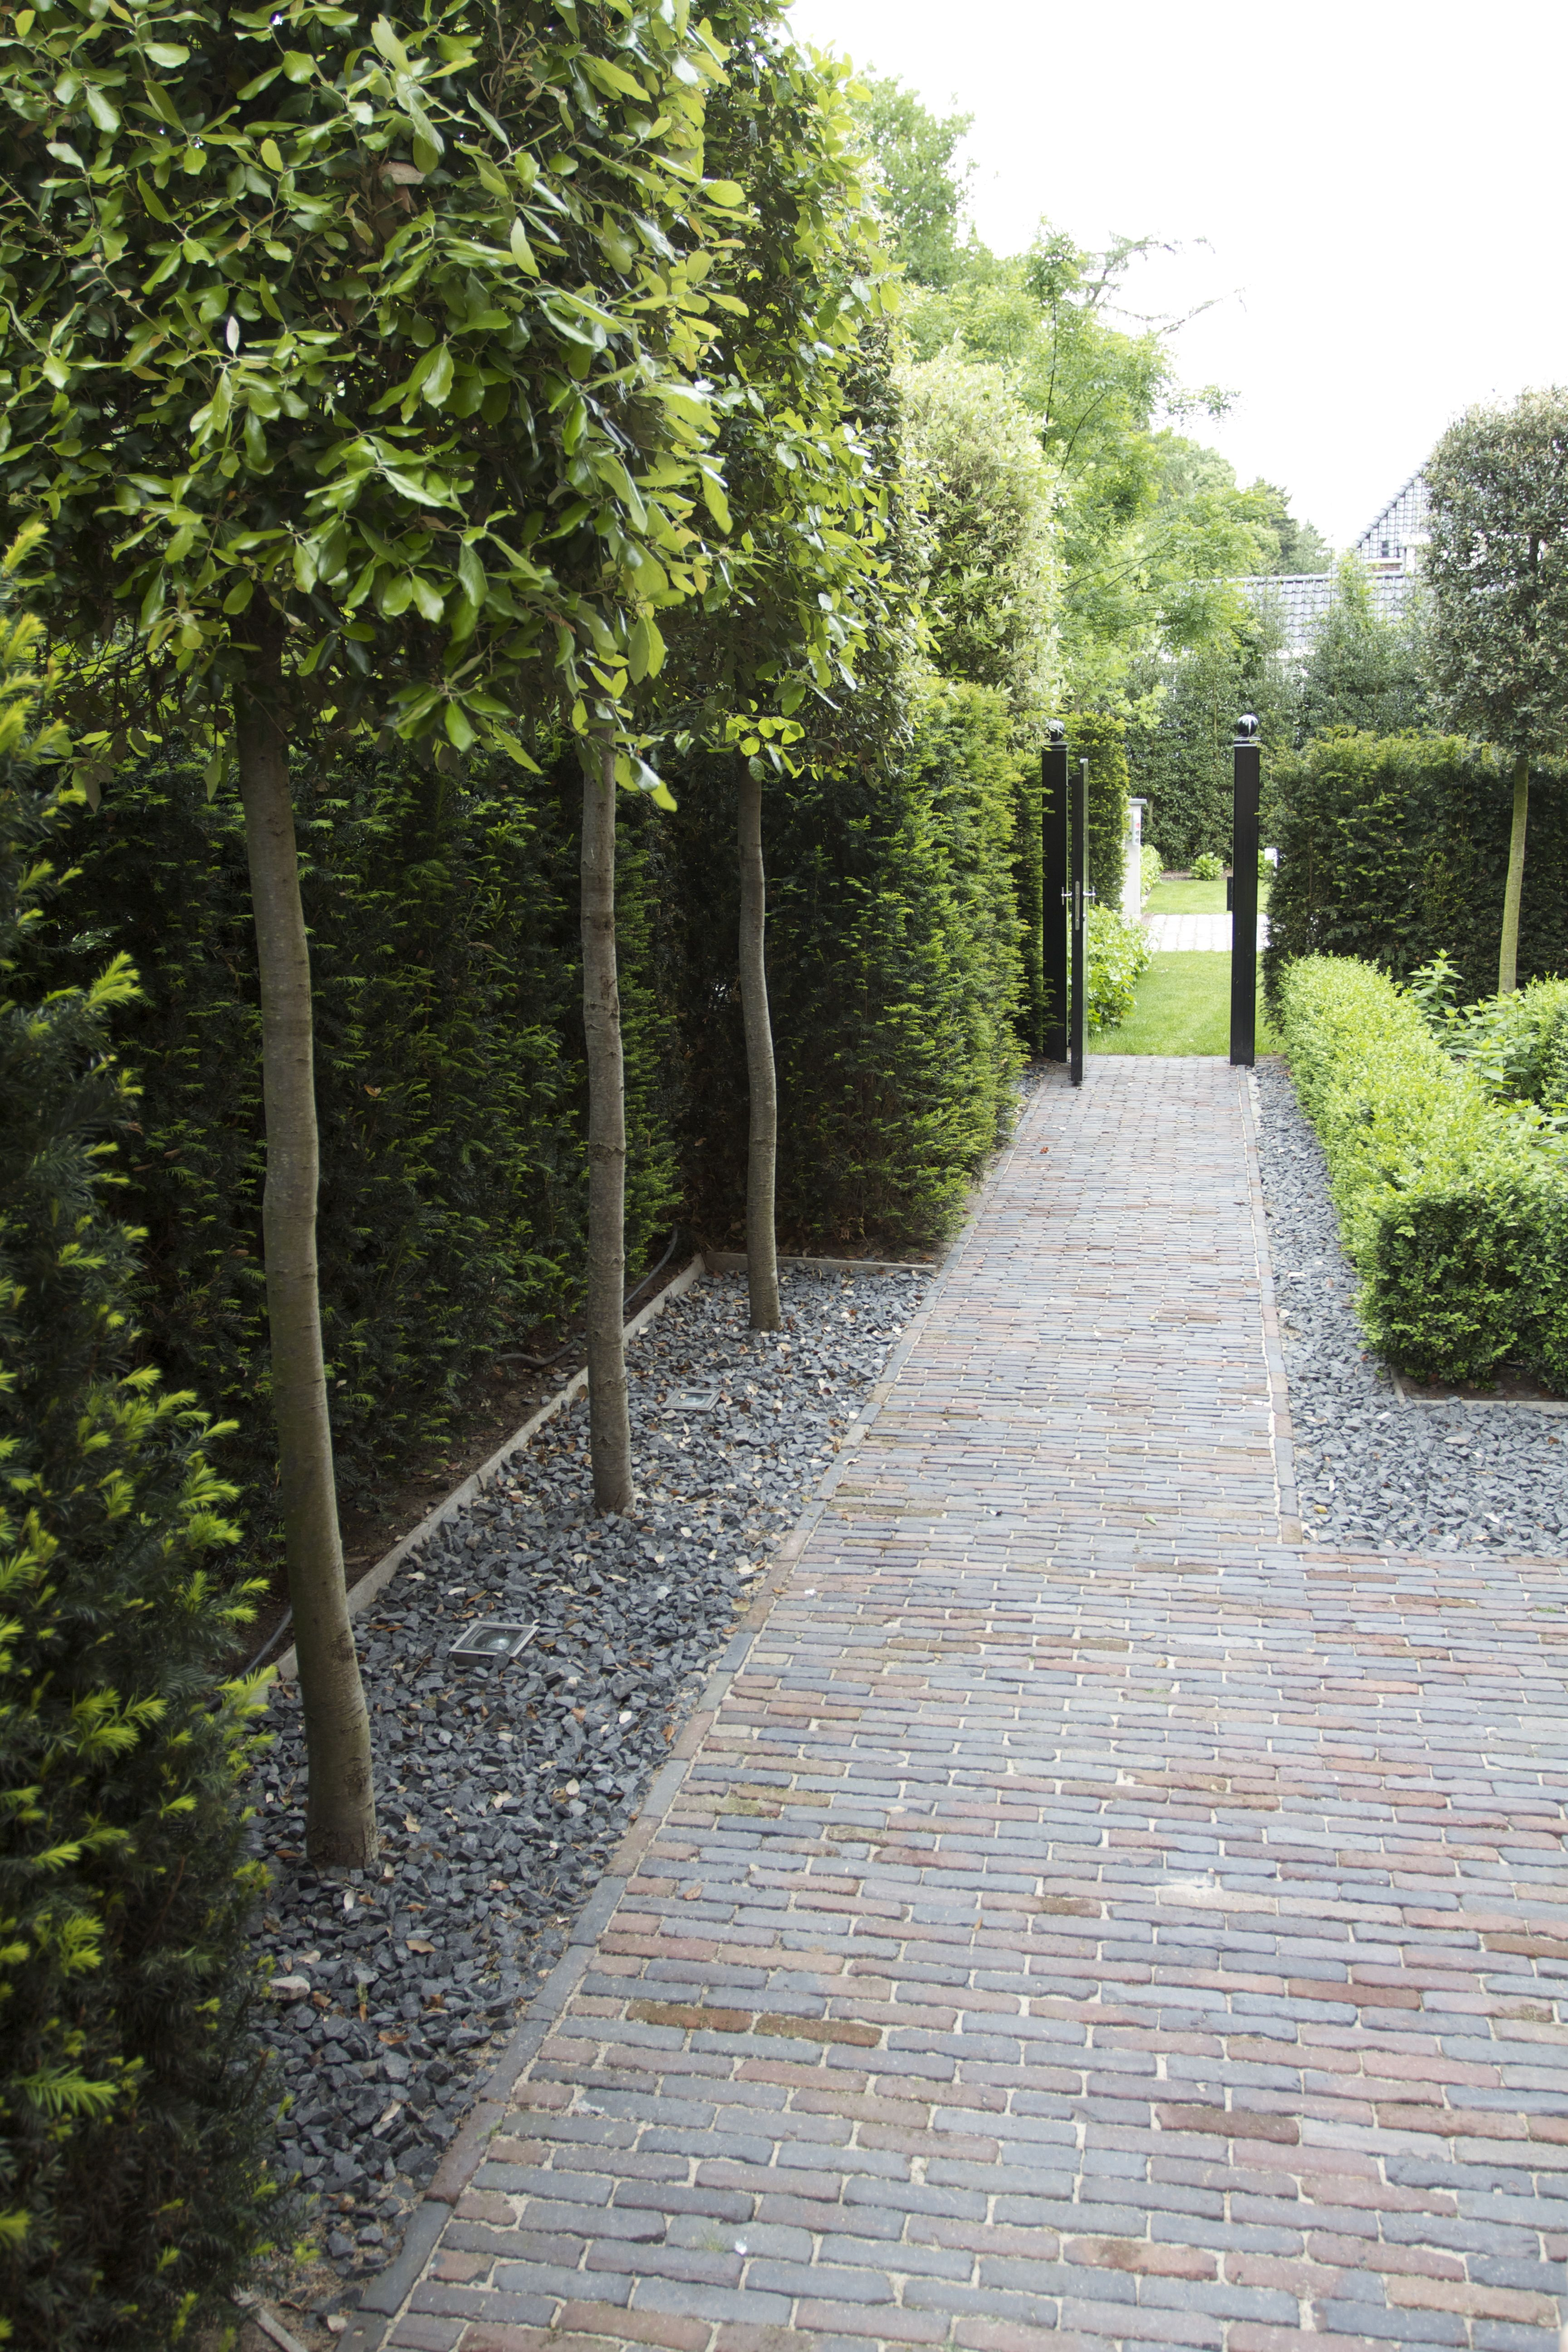 Nice garden trees  trees in gravel for growth love the brick path  landscaping ideas